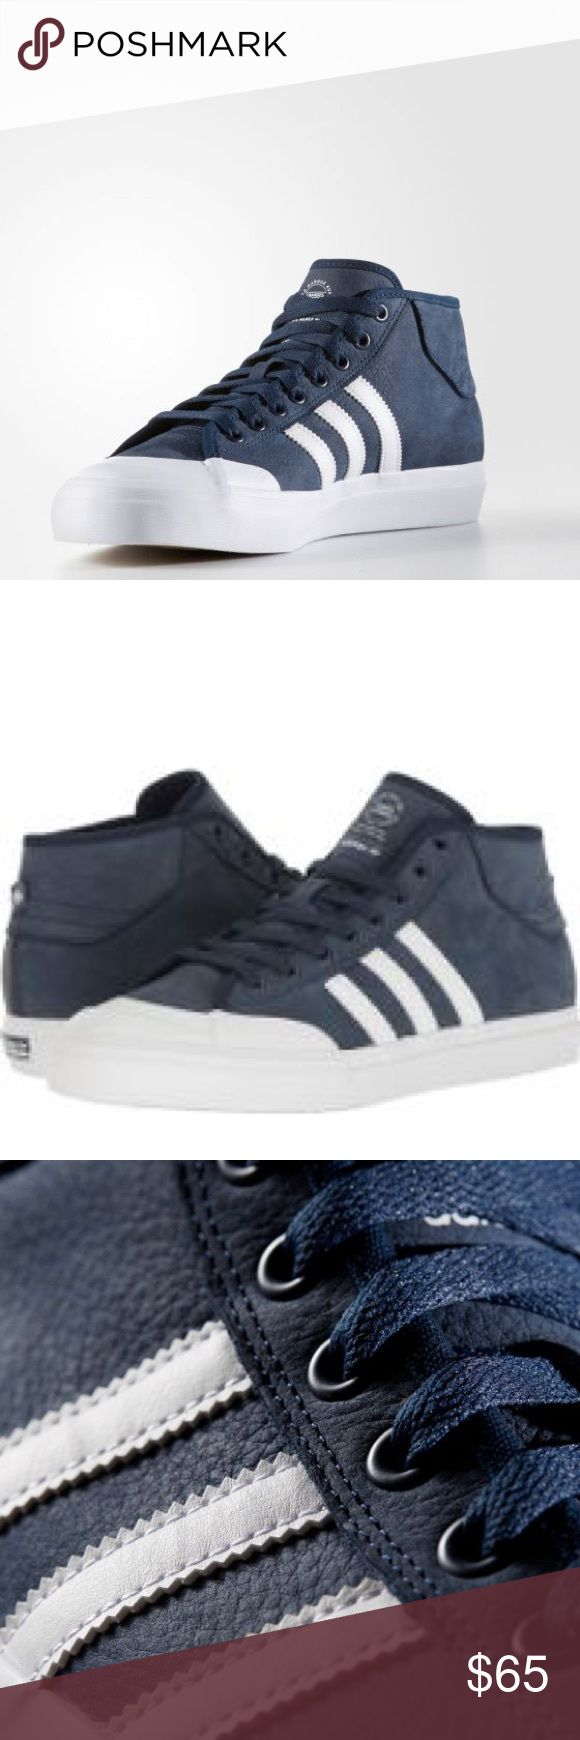 Adidas Matchcourt Mid Mid height. Brand New in Box. Never even tried on. Rubber soles. Soft smooth leather. Navy blue and white stripes. Men's 13. adidas Shoes Sneakers